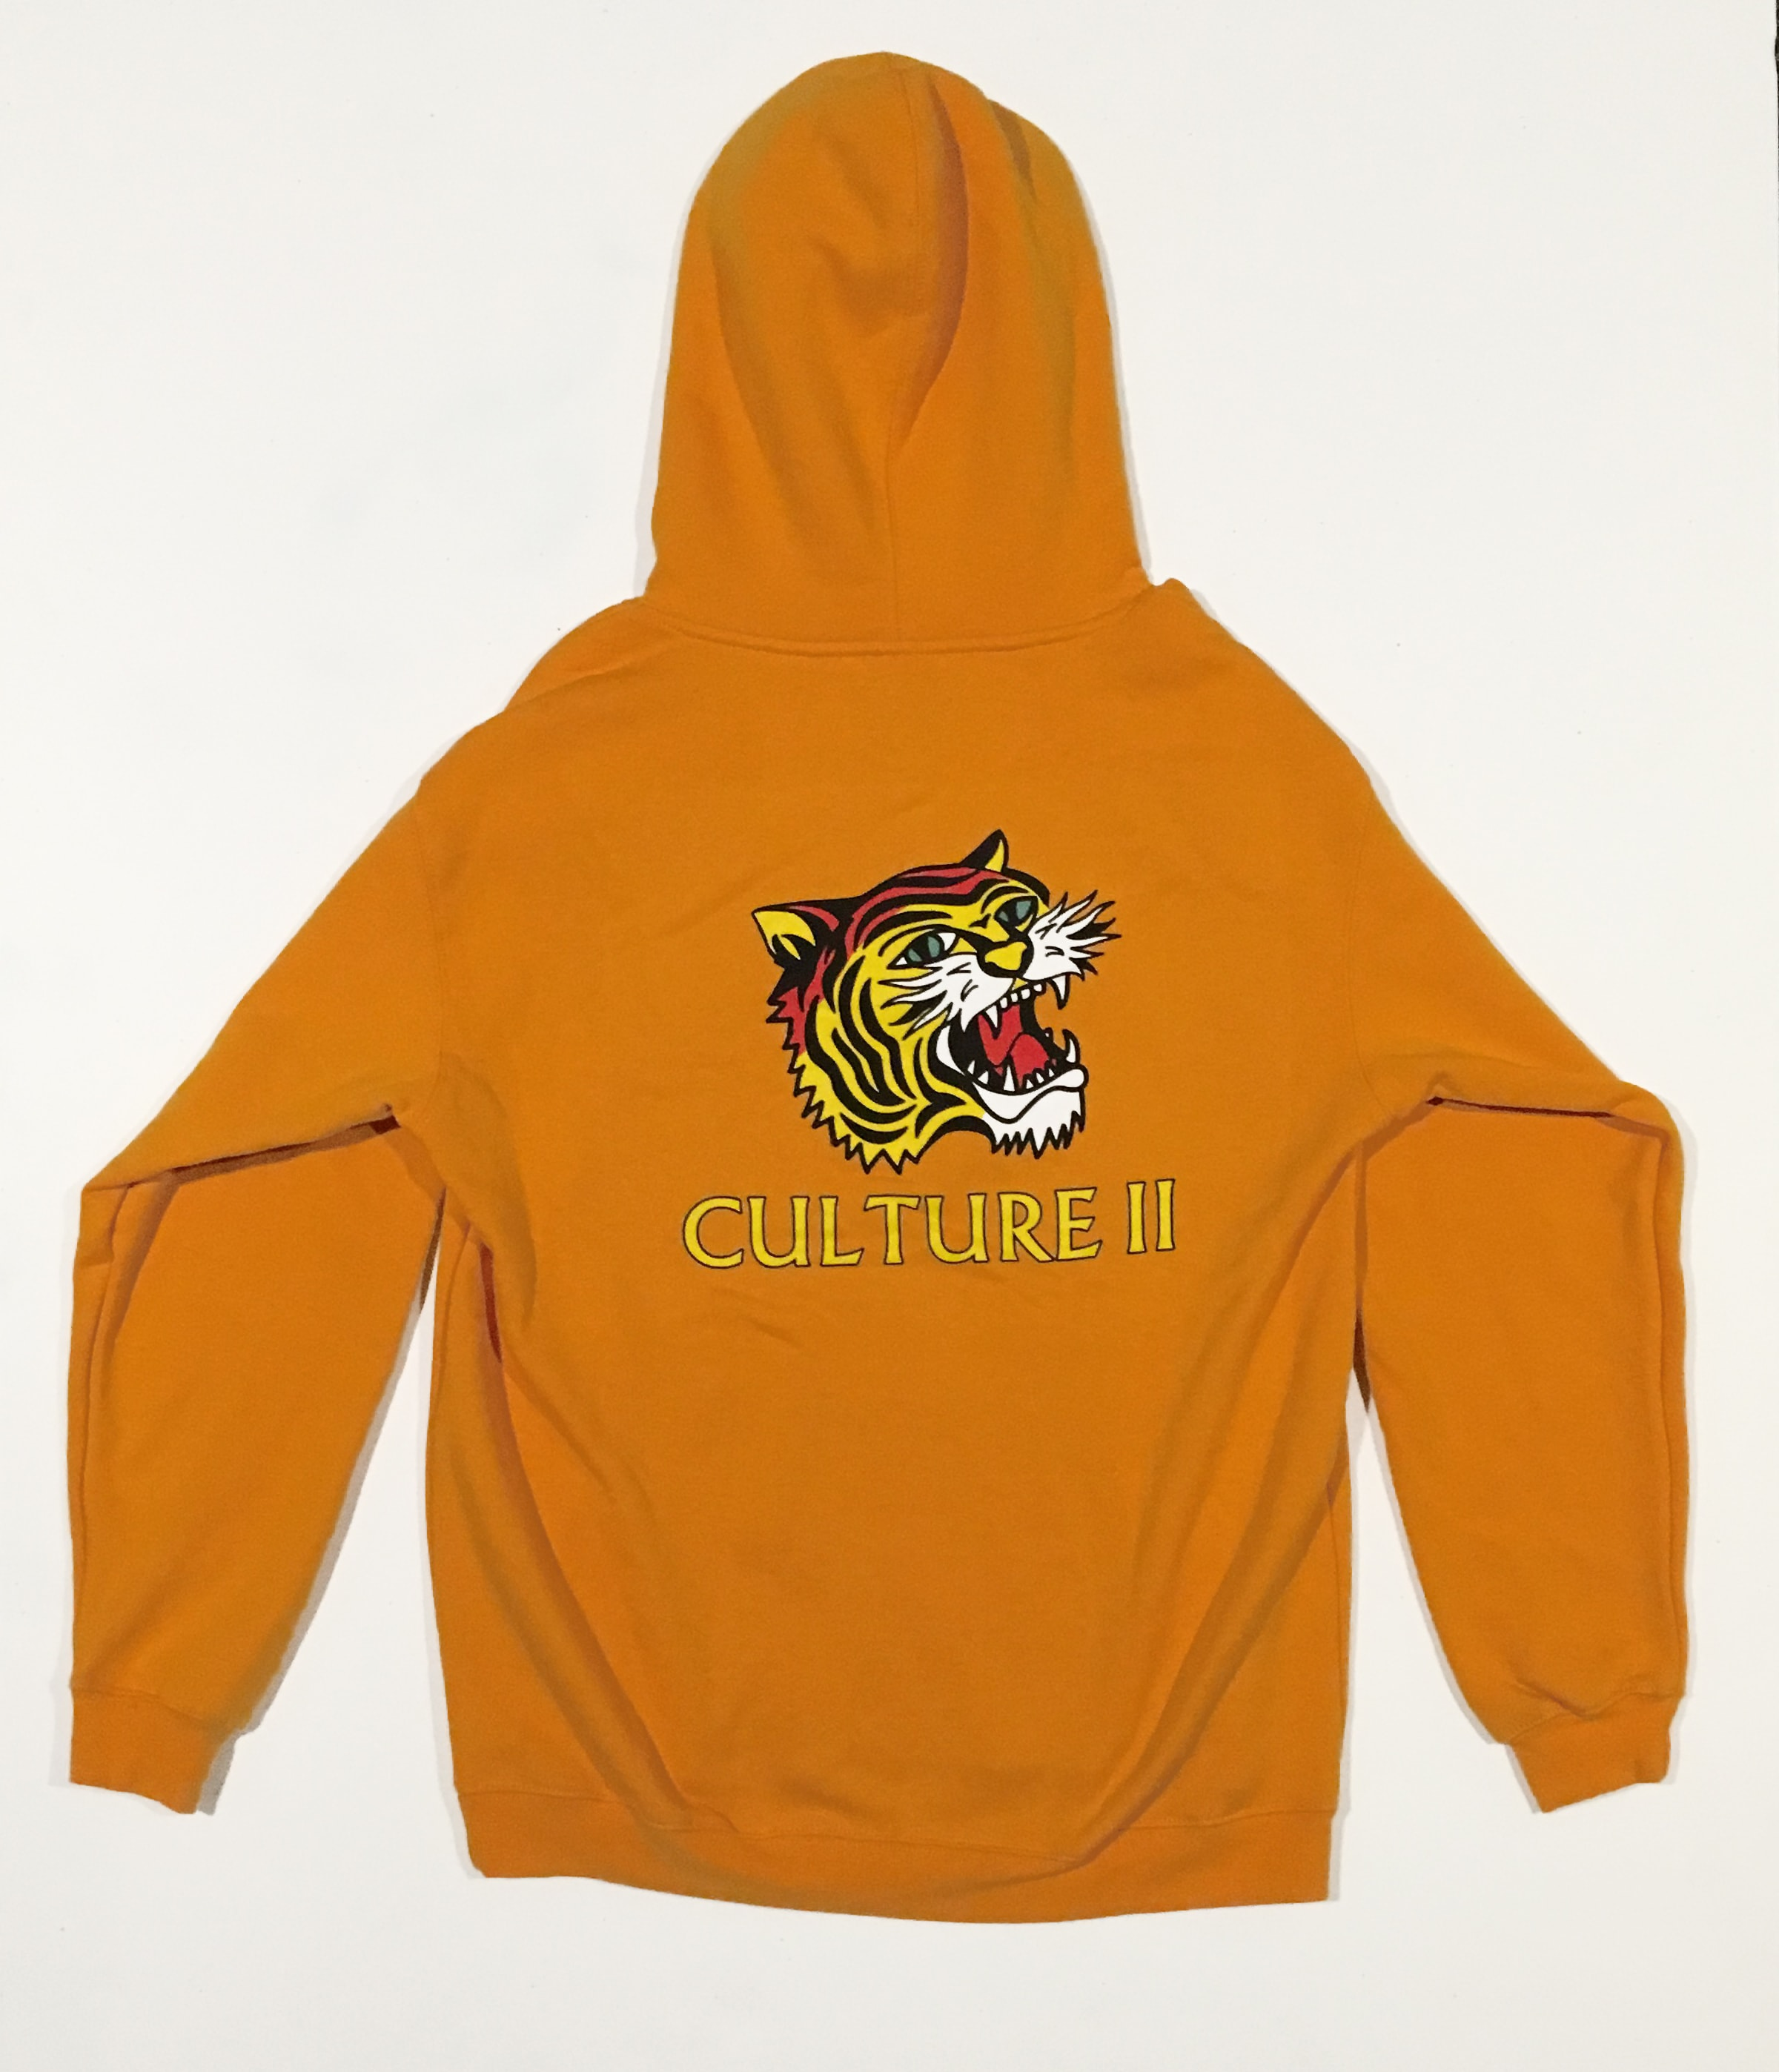 Migos 'Culture II' Merch Hoodie (Back)